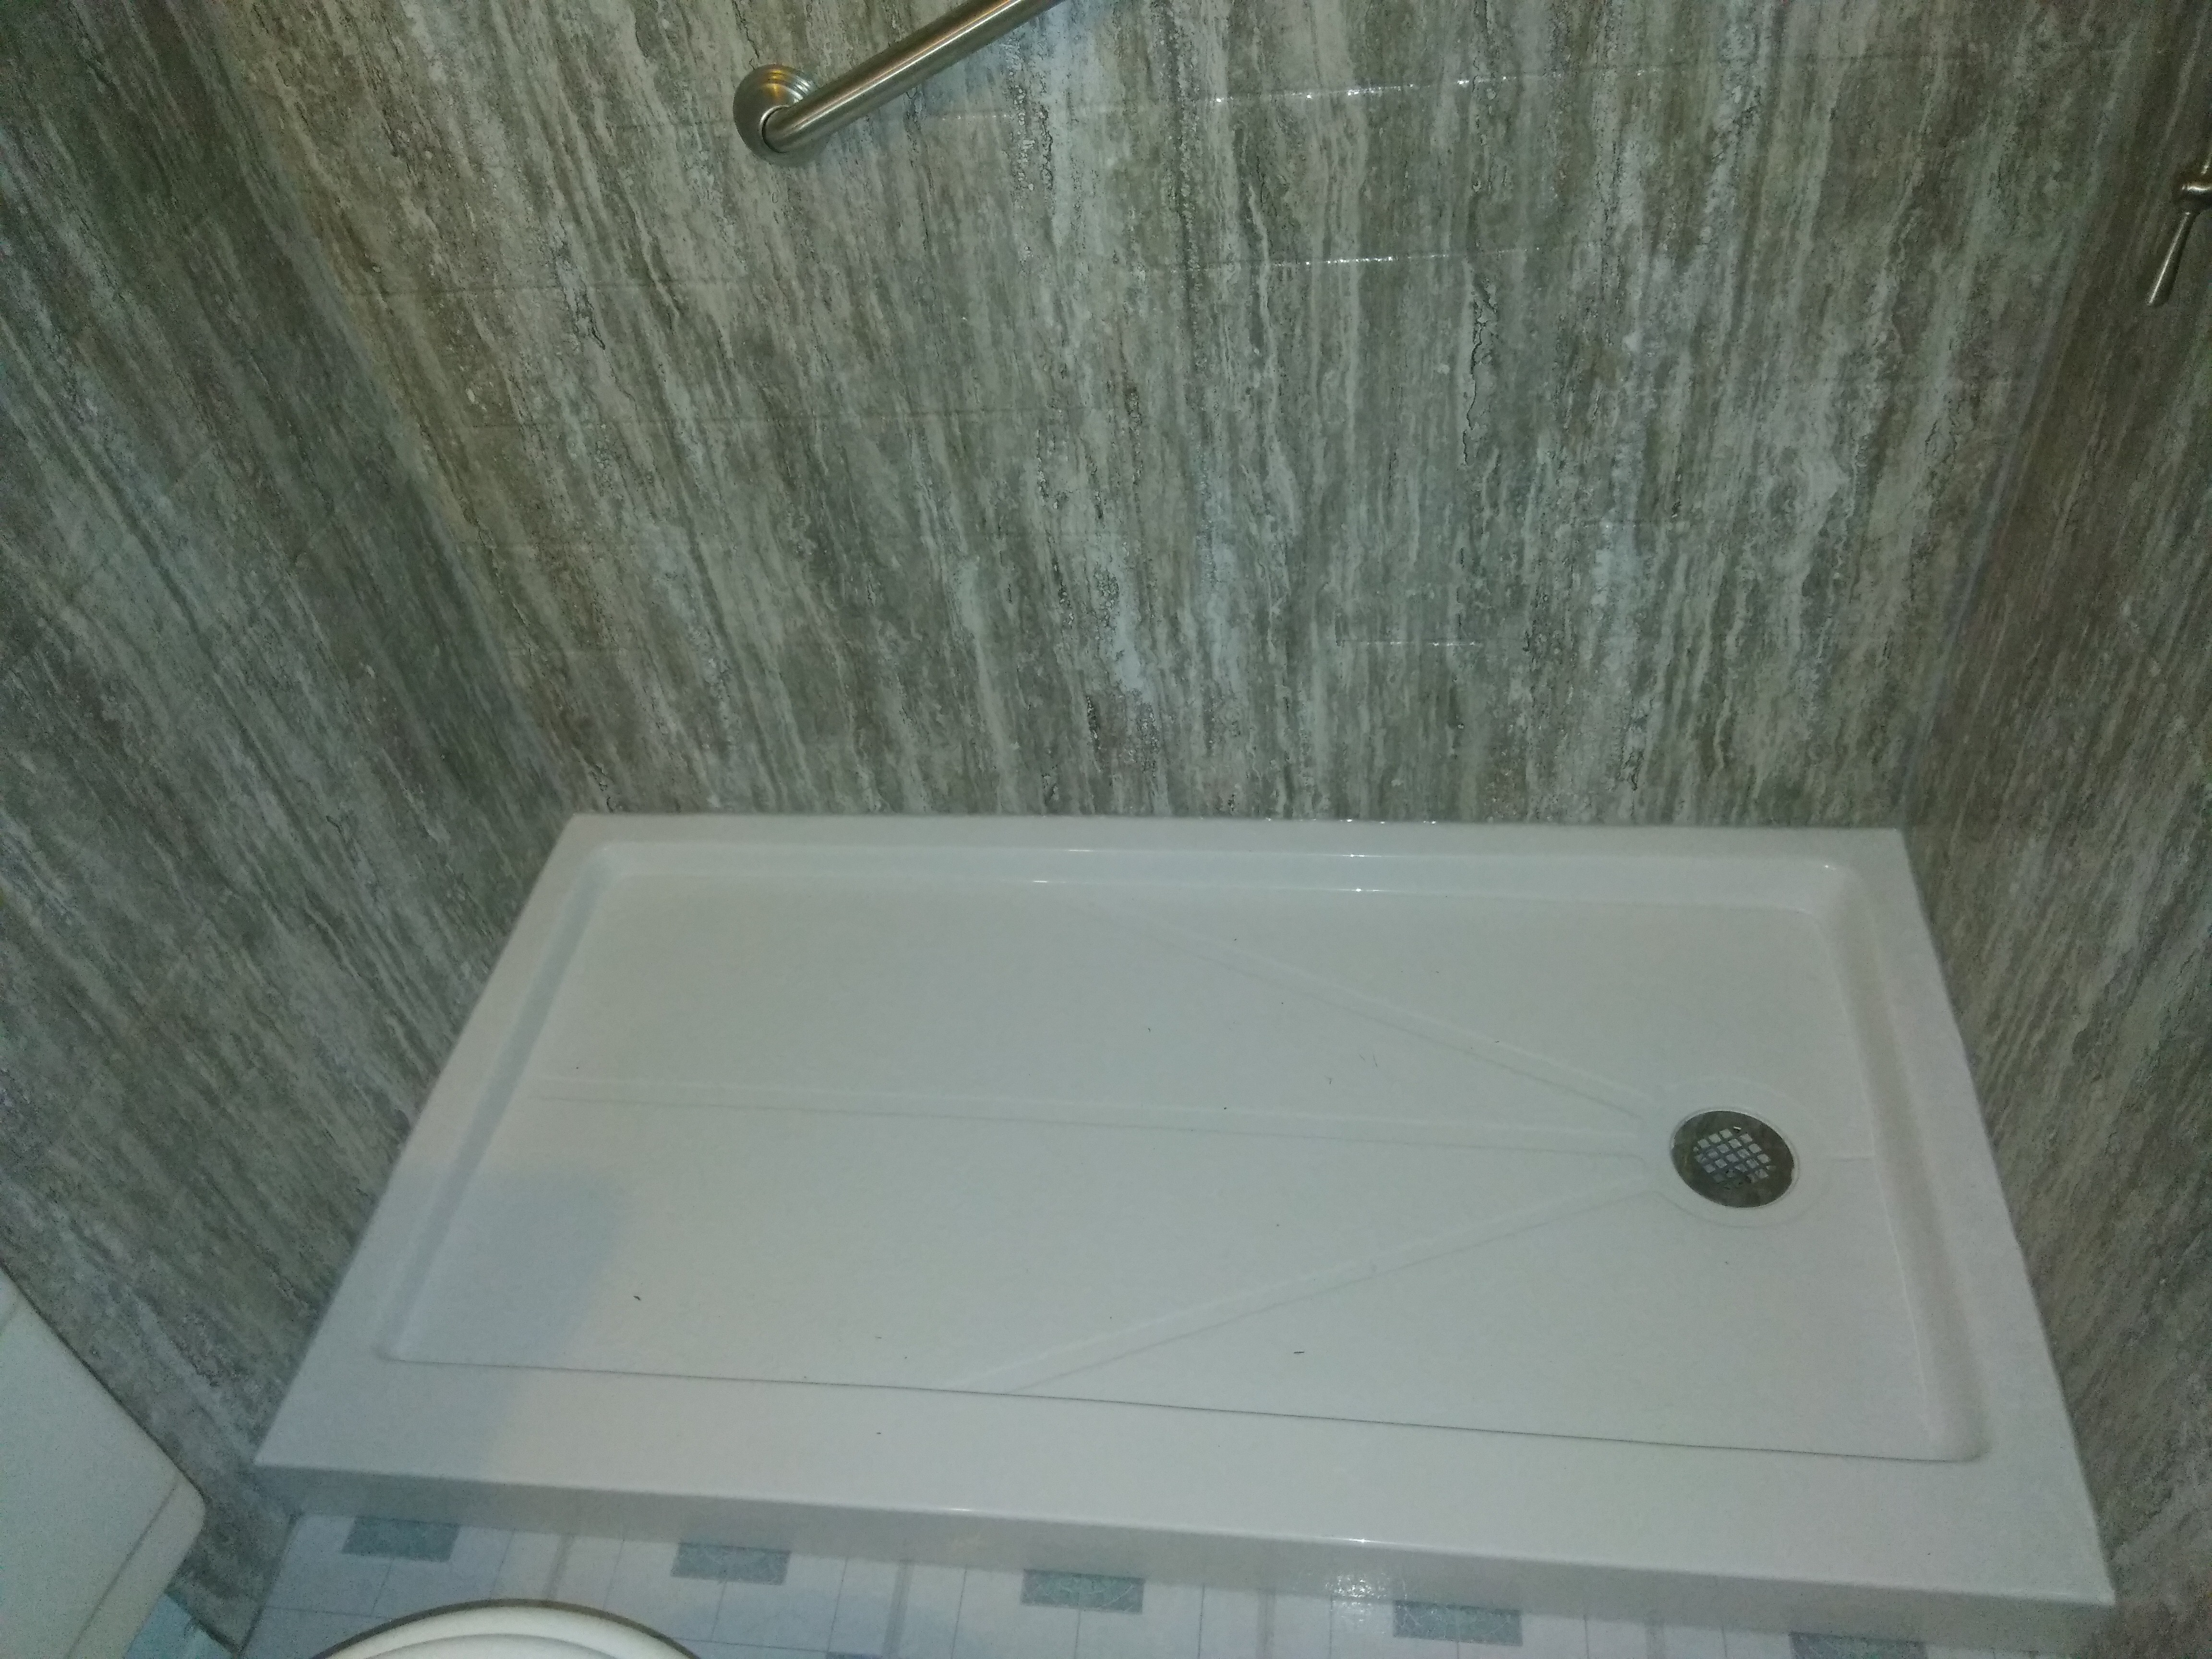 Tub To Shower Toms River New Jersey New Jersey Remodeling - Bathroom remodeling toms river nj